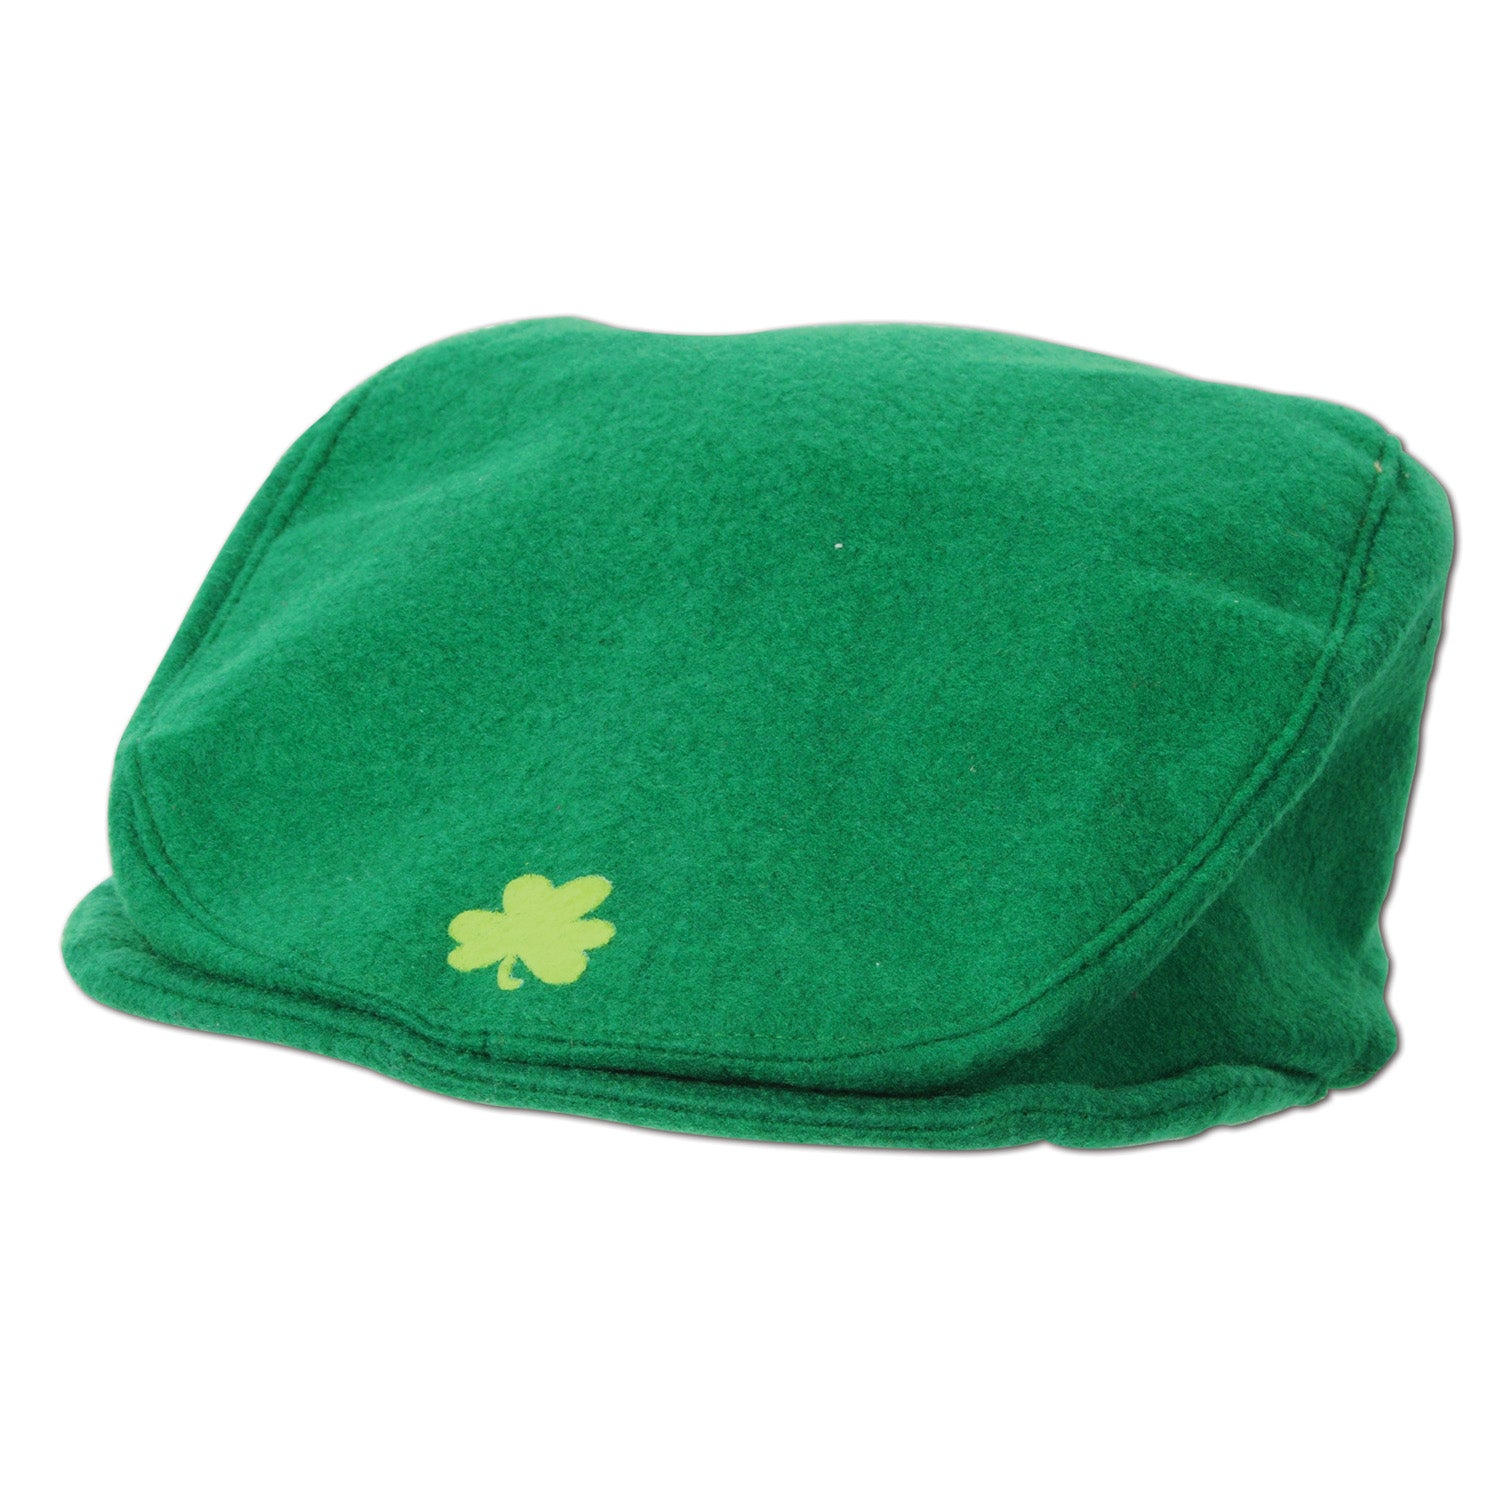 St Pat's Cap by Beistle - St. Patricks Day Theme Decorations